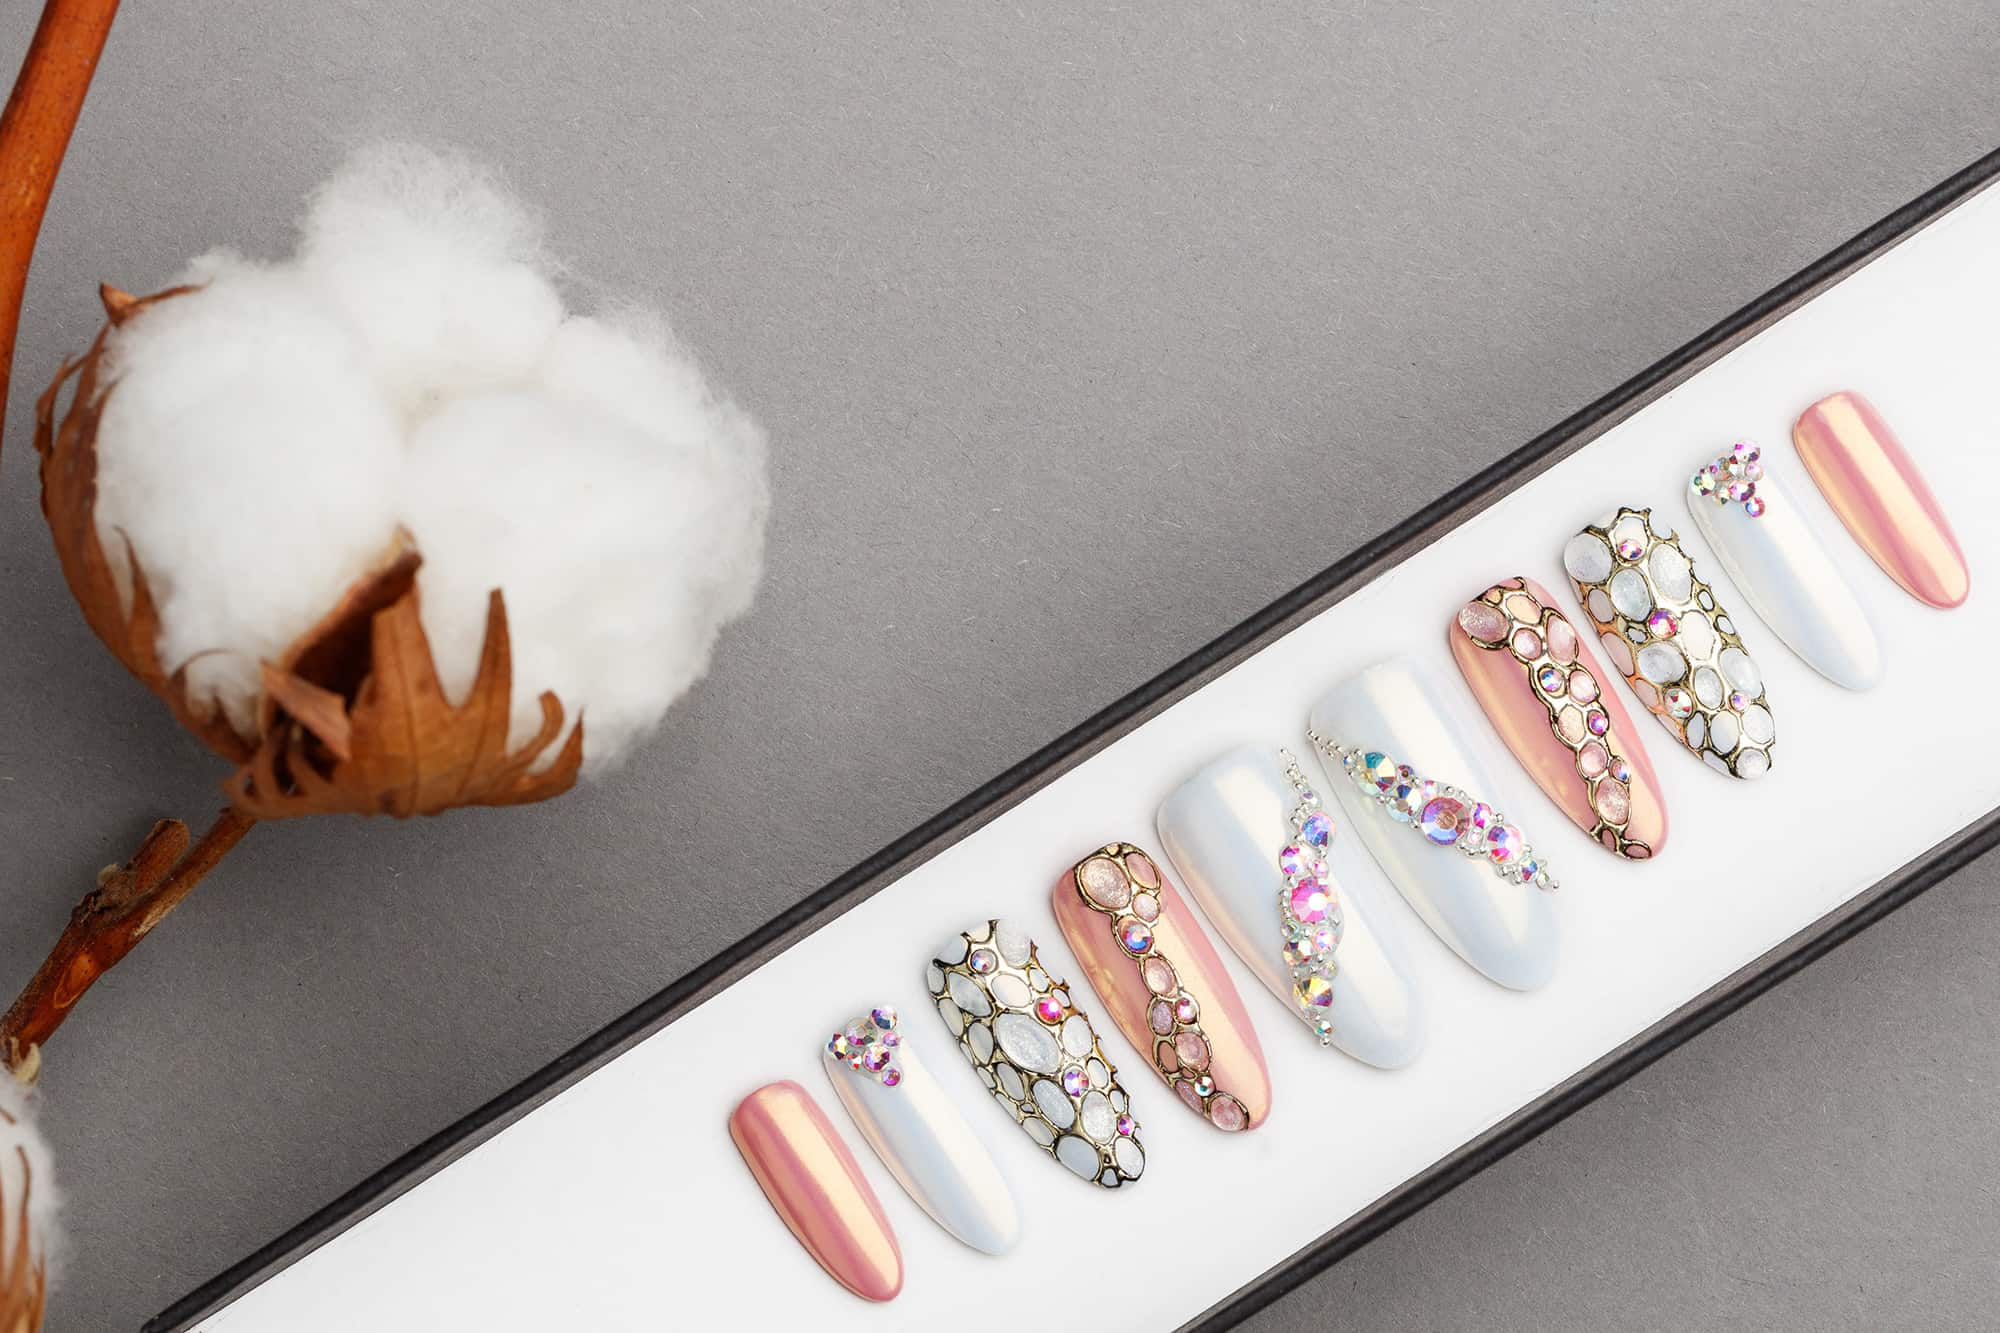 Pearl White and Nude Press on Nails | Handpainted Nail Art | Fake Nails | False Nails | Glue On Nails | Swarovski Crystals